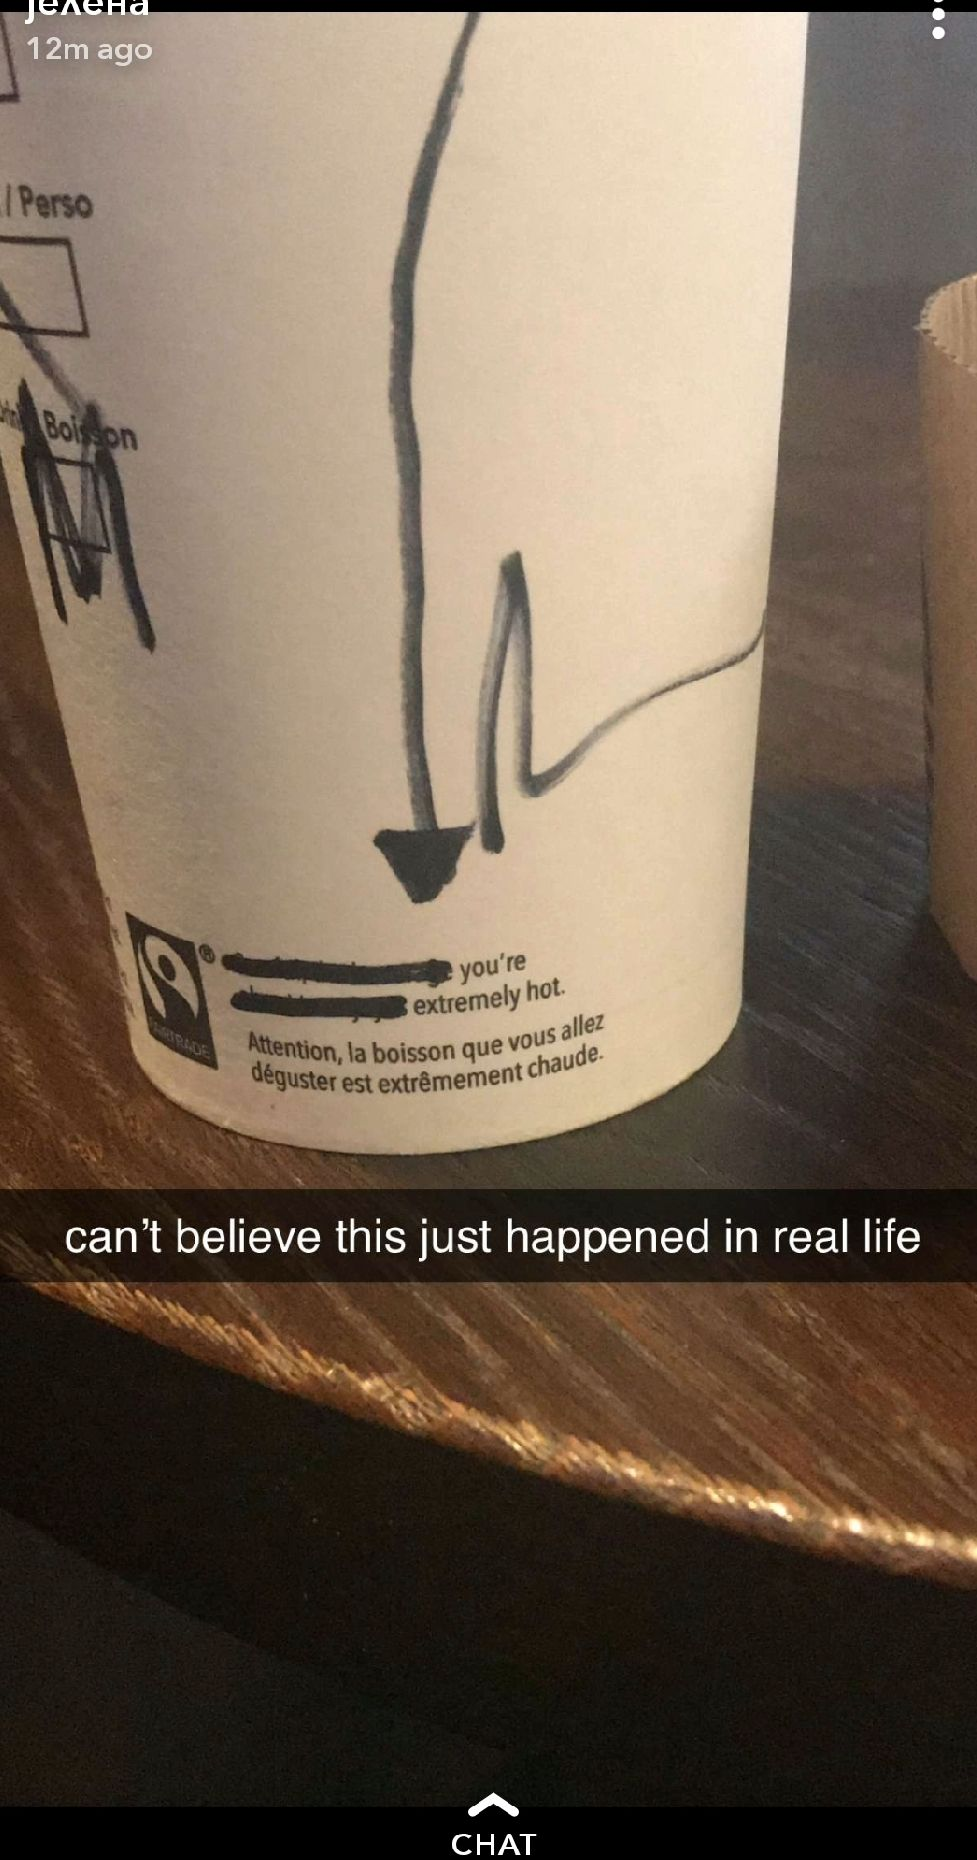 The barista did this to her coffee